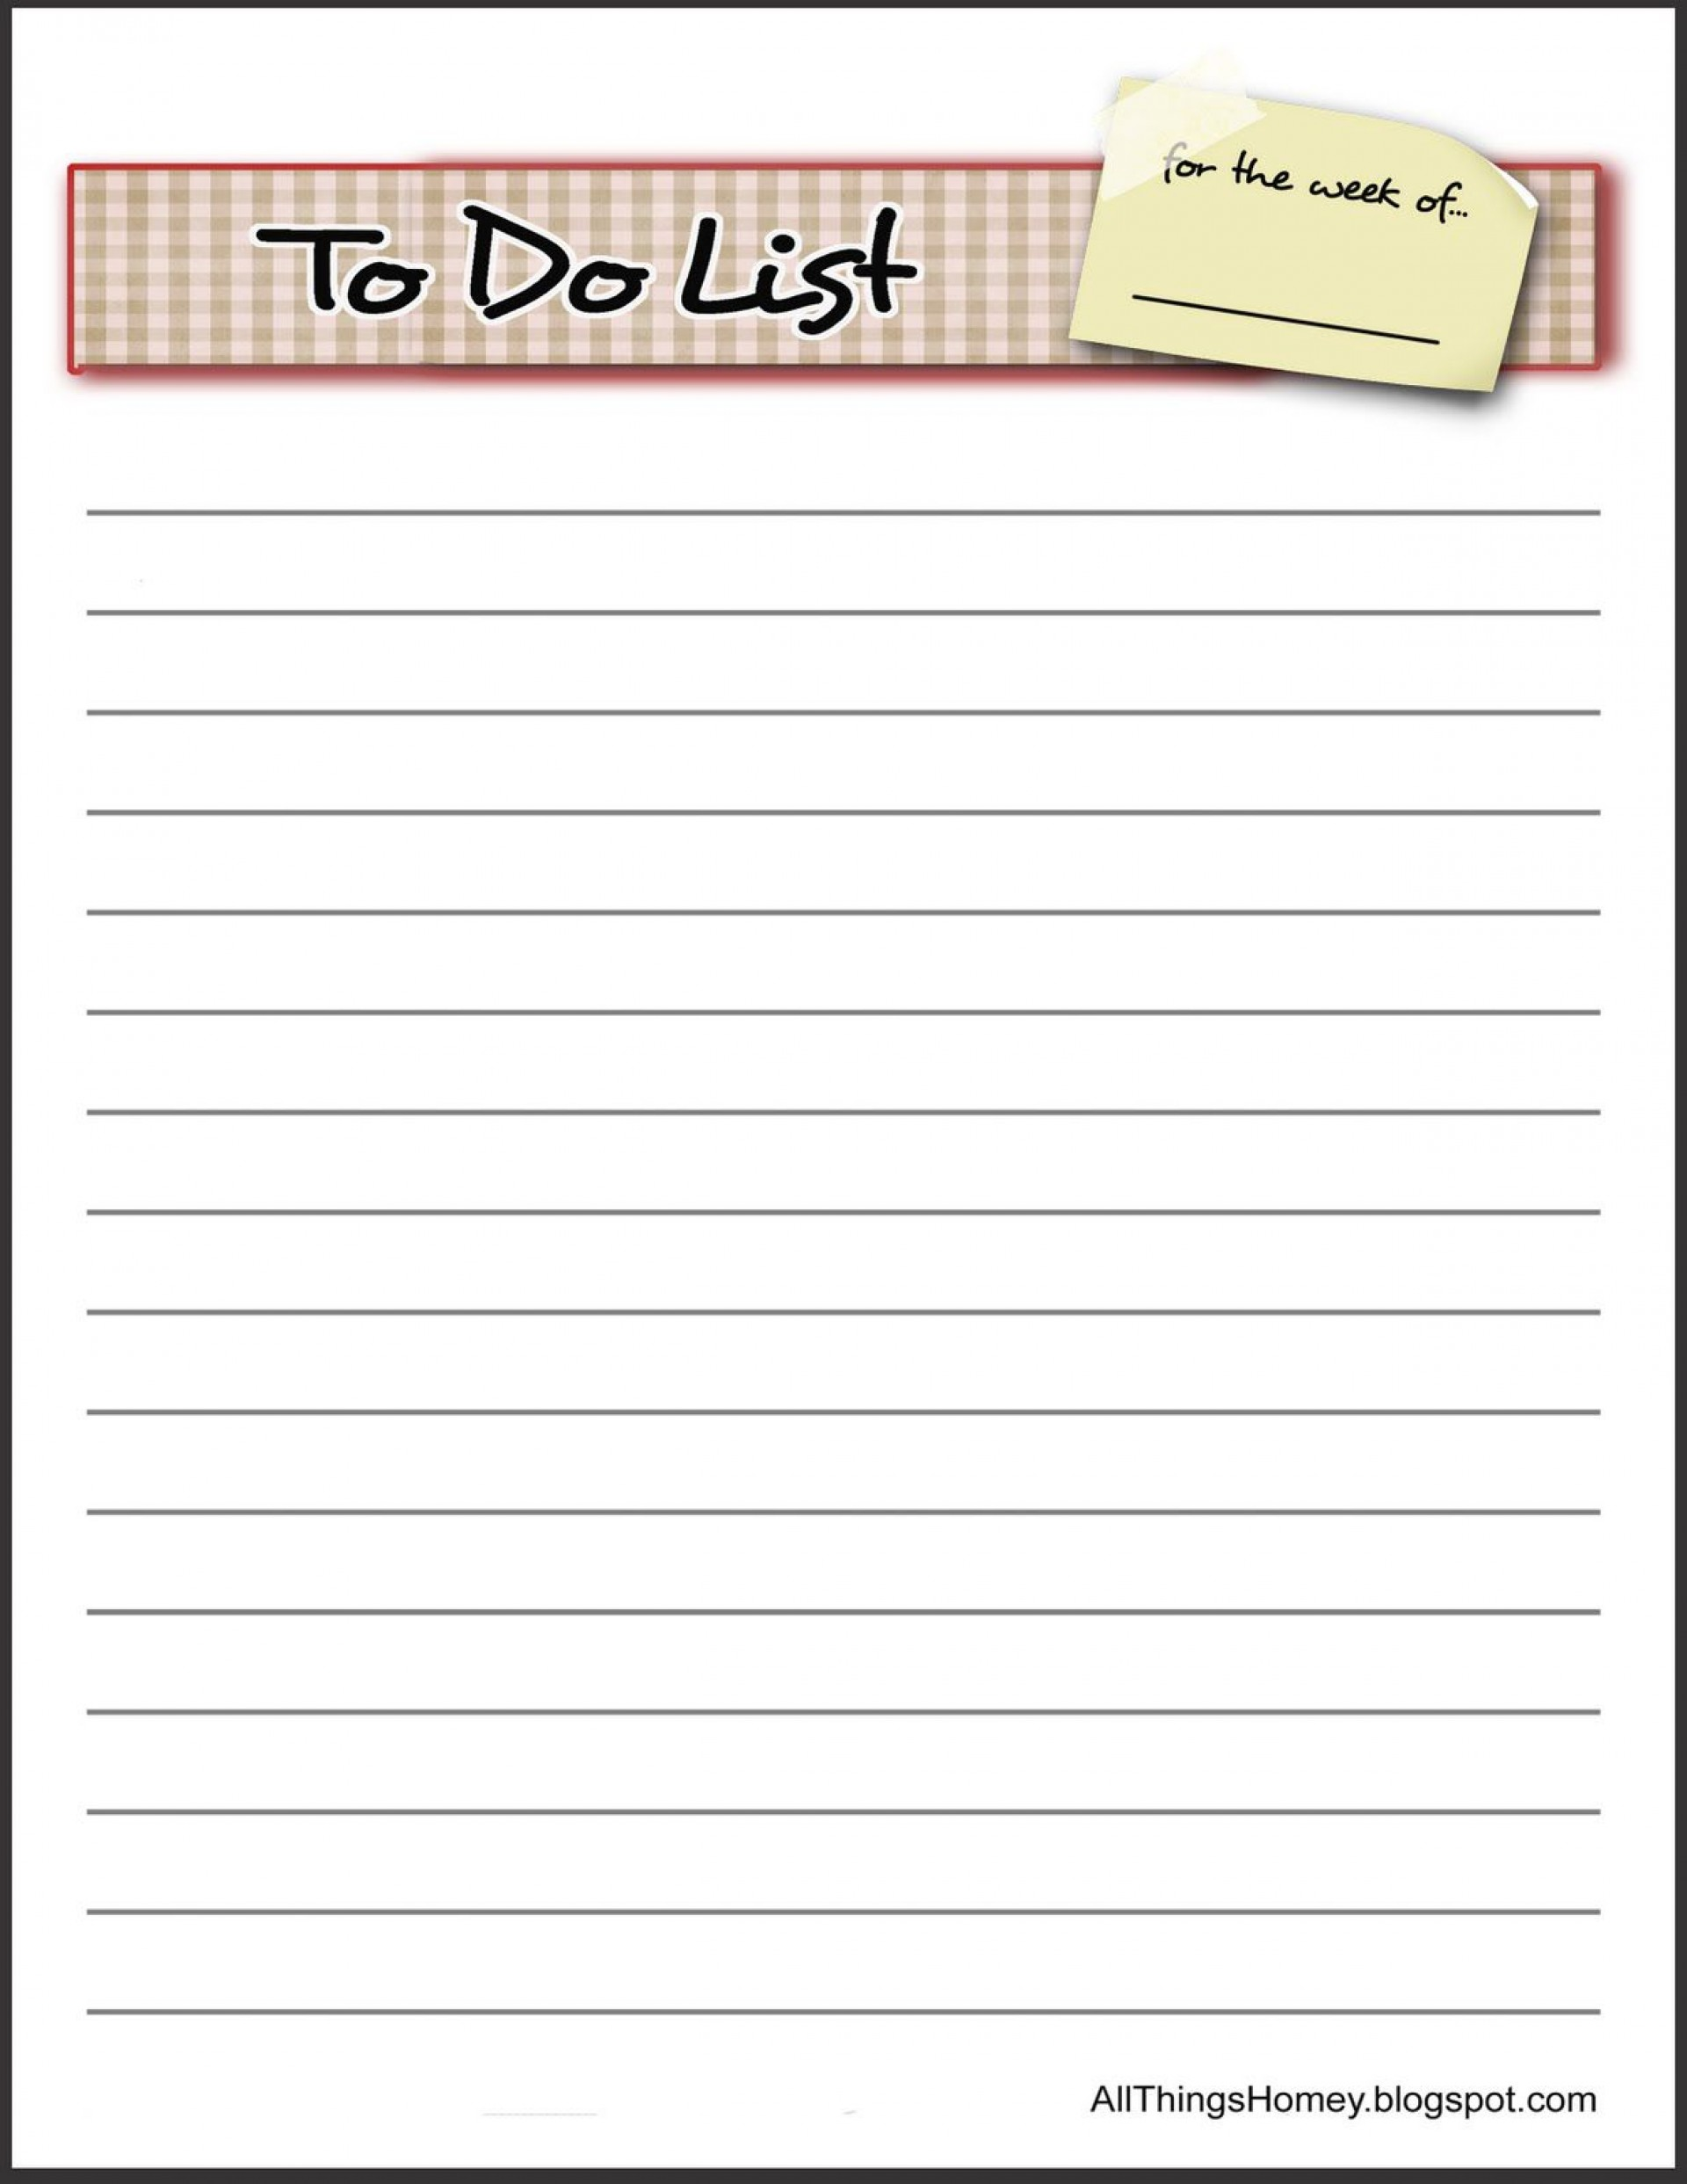 009 Awful To Do List Template Word High Def 1920